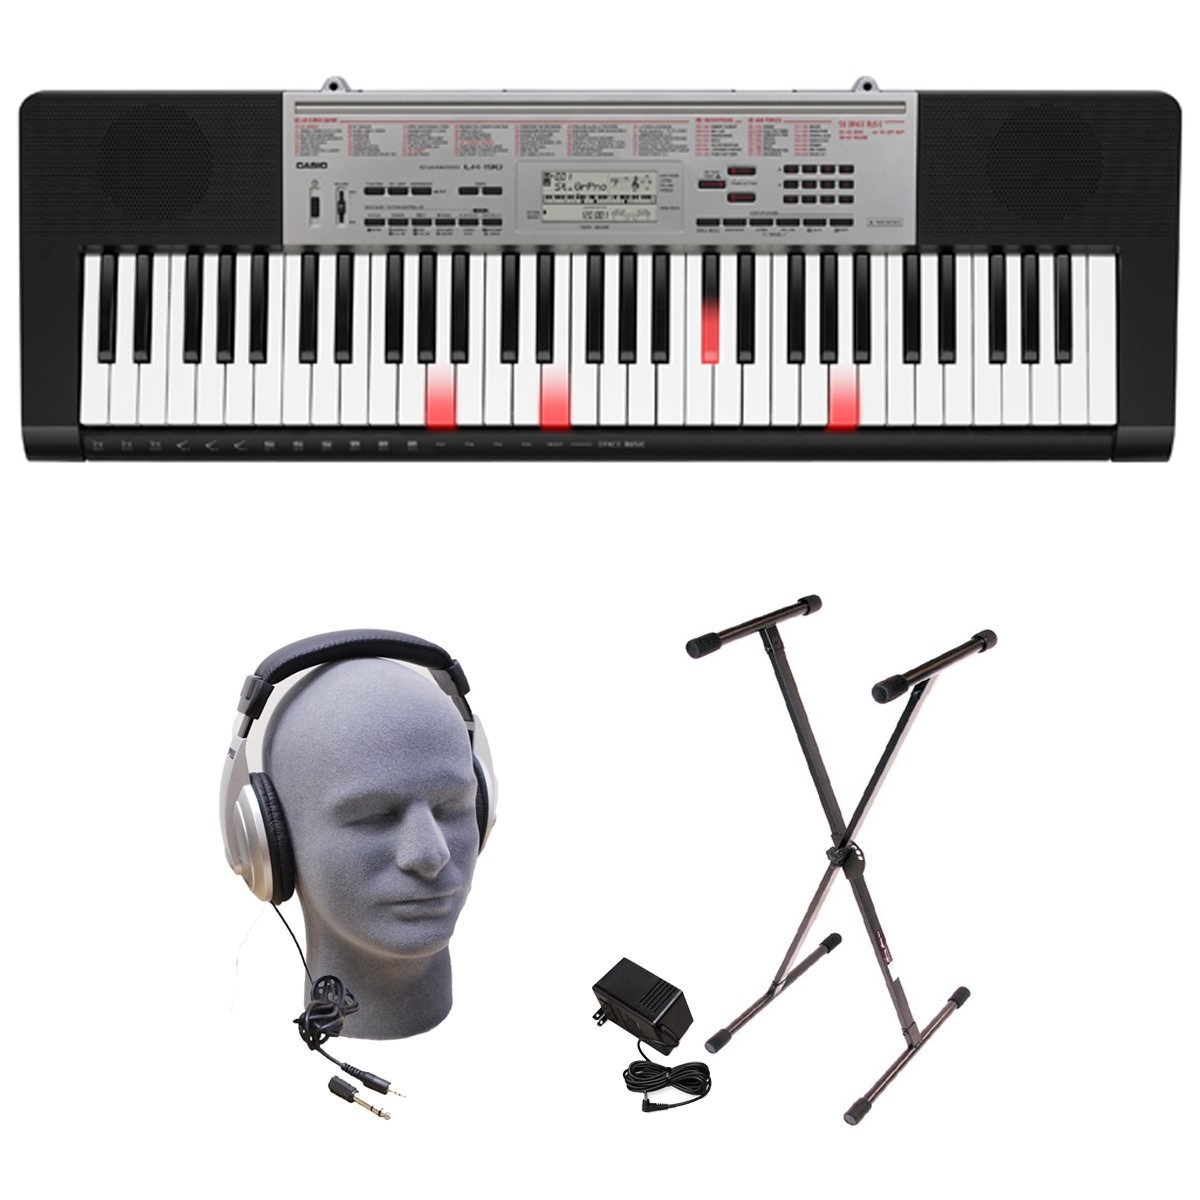 Casio LK-190 61-Key Premium Lighted Keyboard Pack with Stand, Headphones & Power Supply